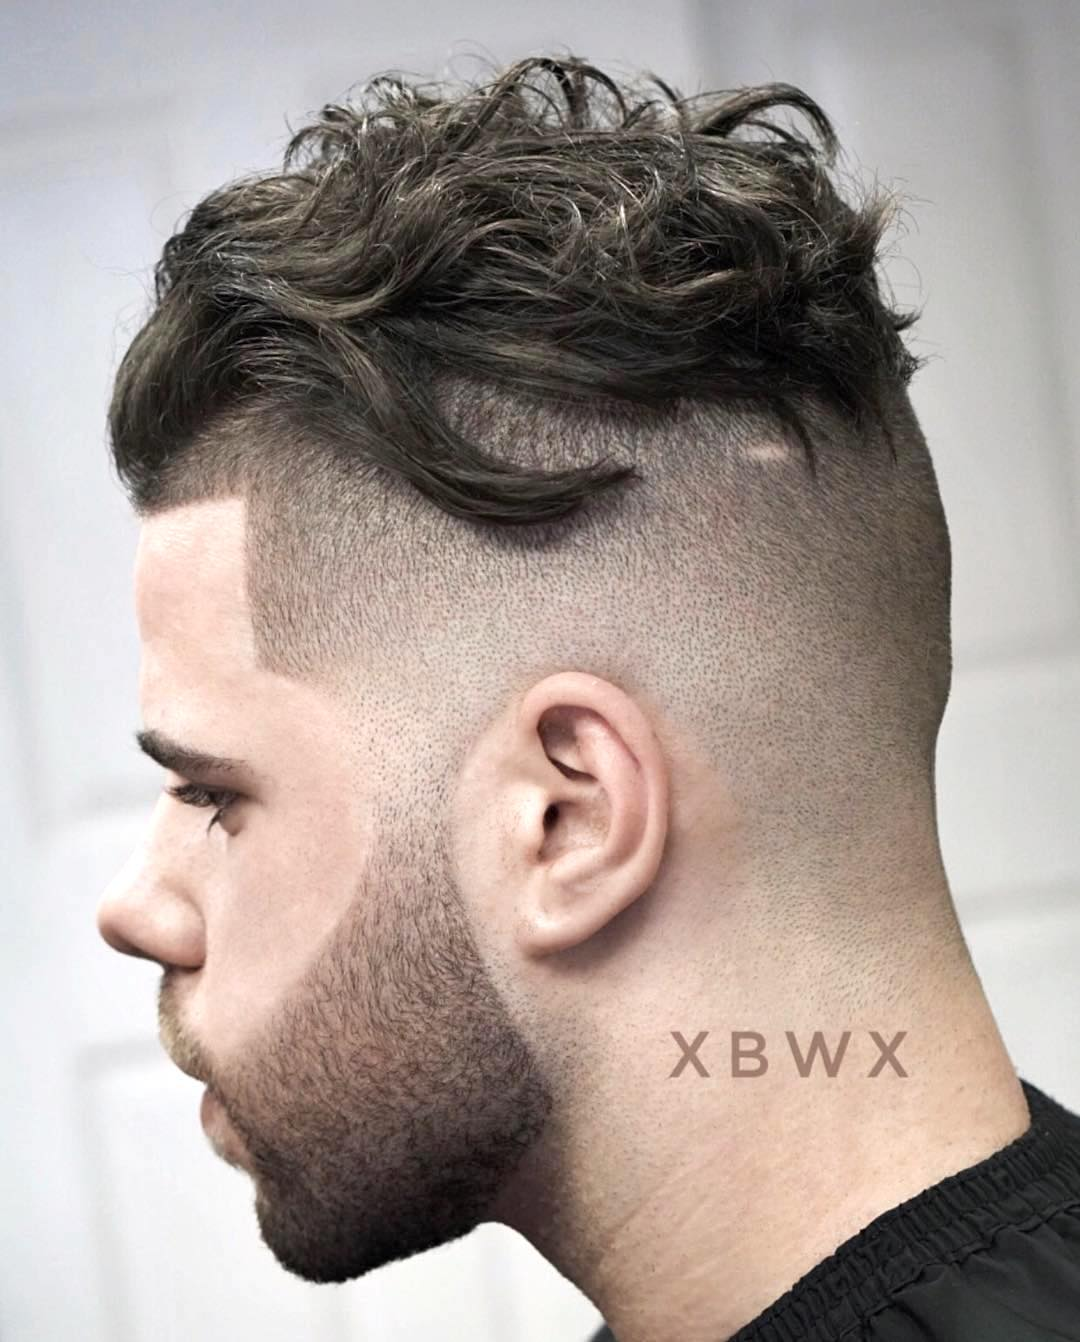 xbigwesx cool undercut hairstyle for men with thick hair